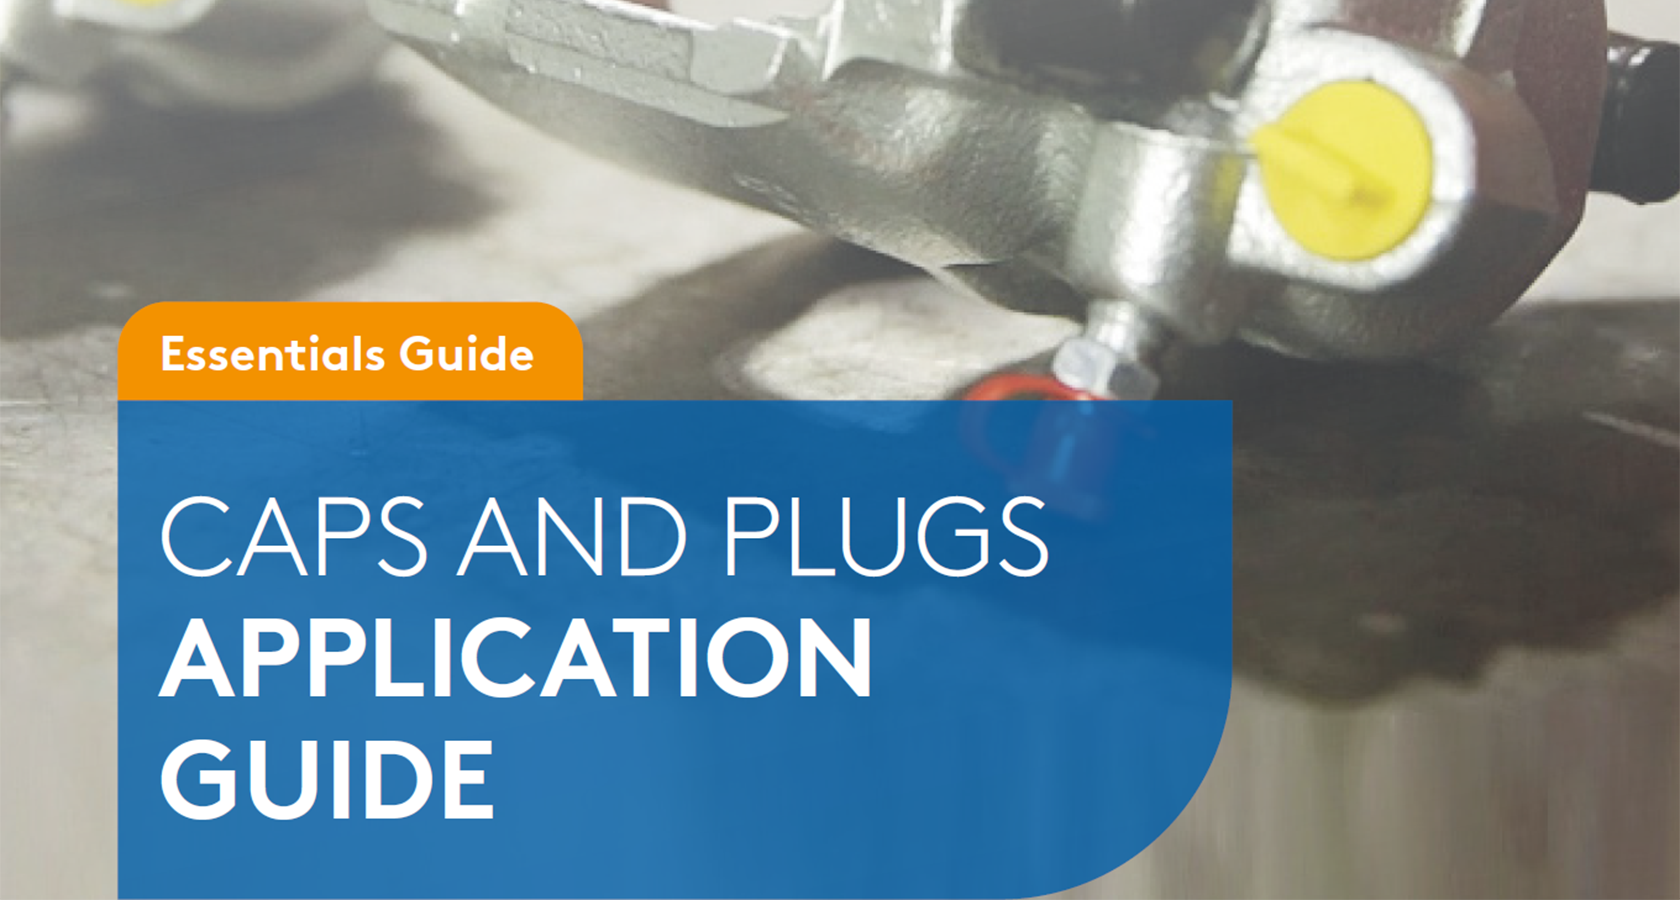 The Essentials Guide: Caps And Plugs Application